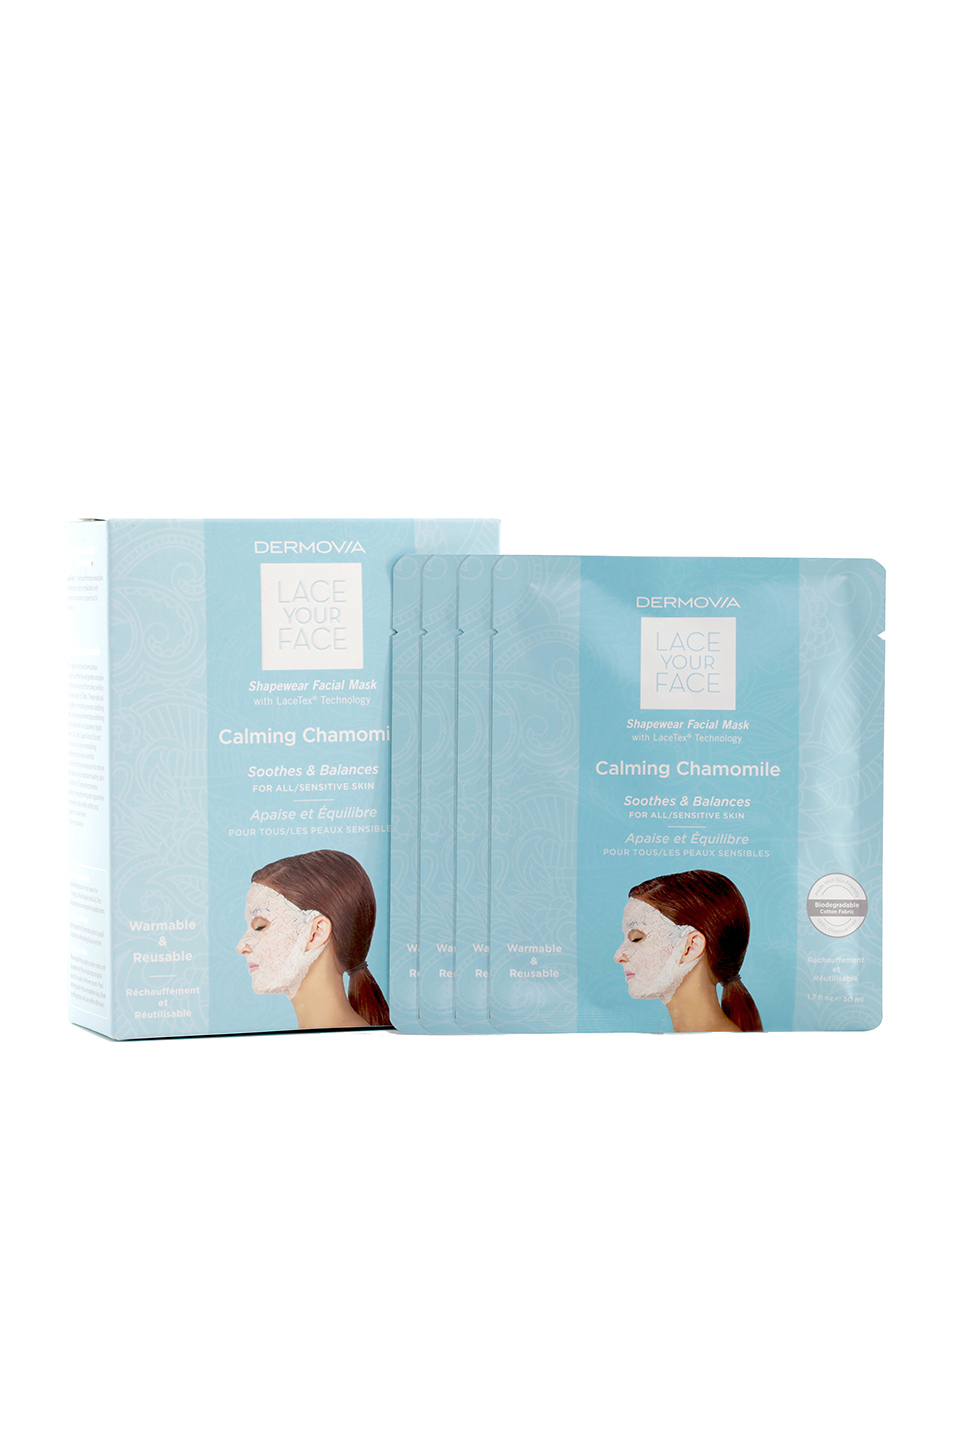 Dermovia Lace Your Face Mask 4 Pack in Calming Chamomile